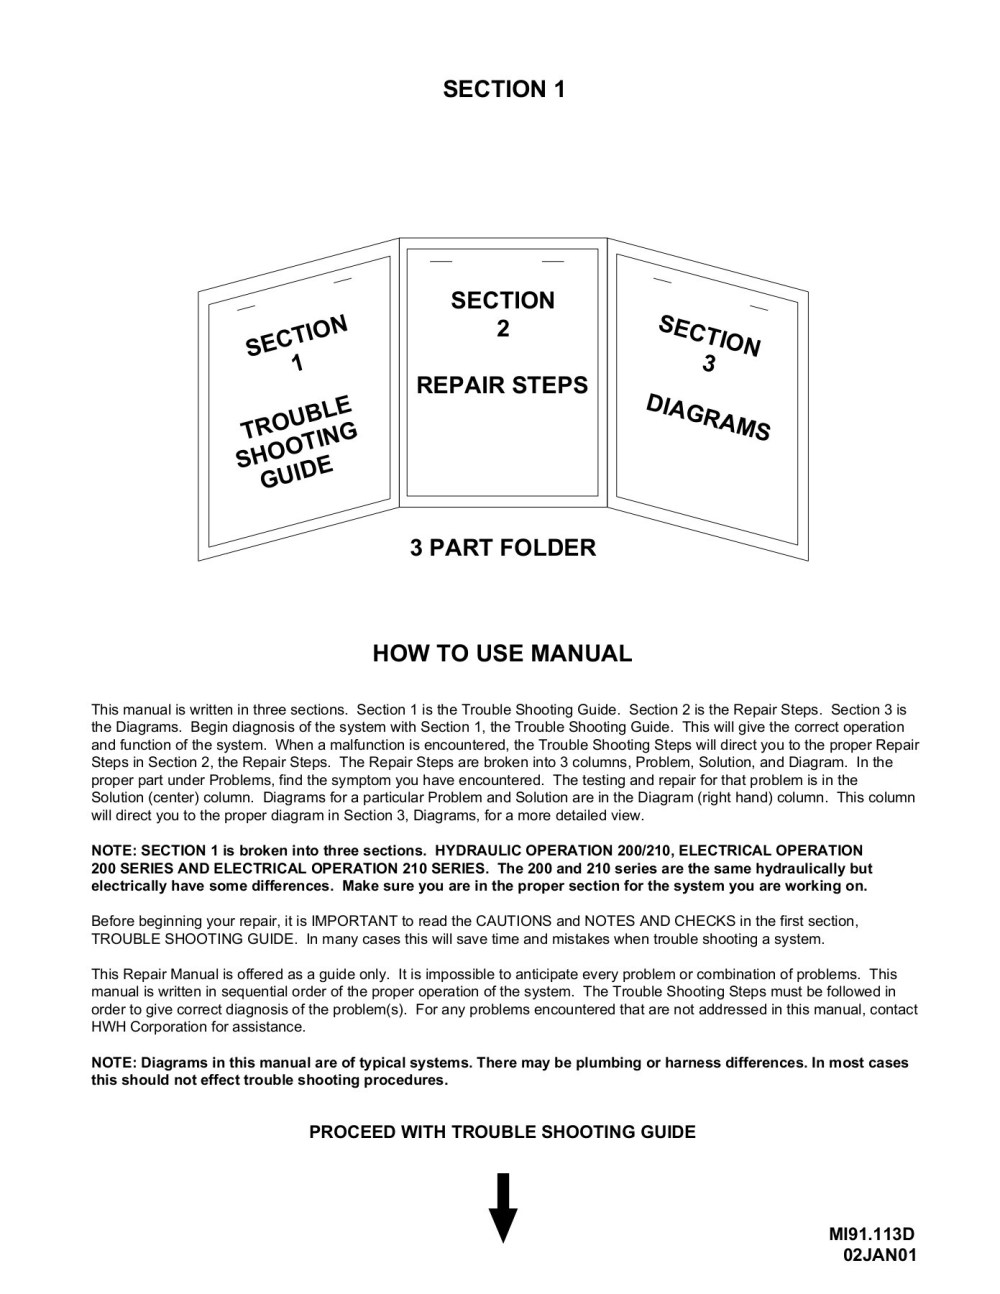 medium resolution of section 1 the trouble shooting guide hwh corporation pages 1 40 text version fliphtml5